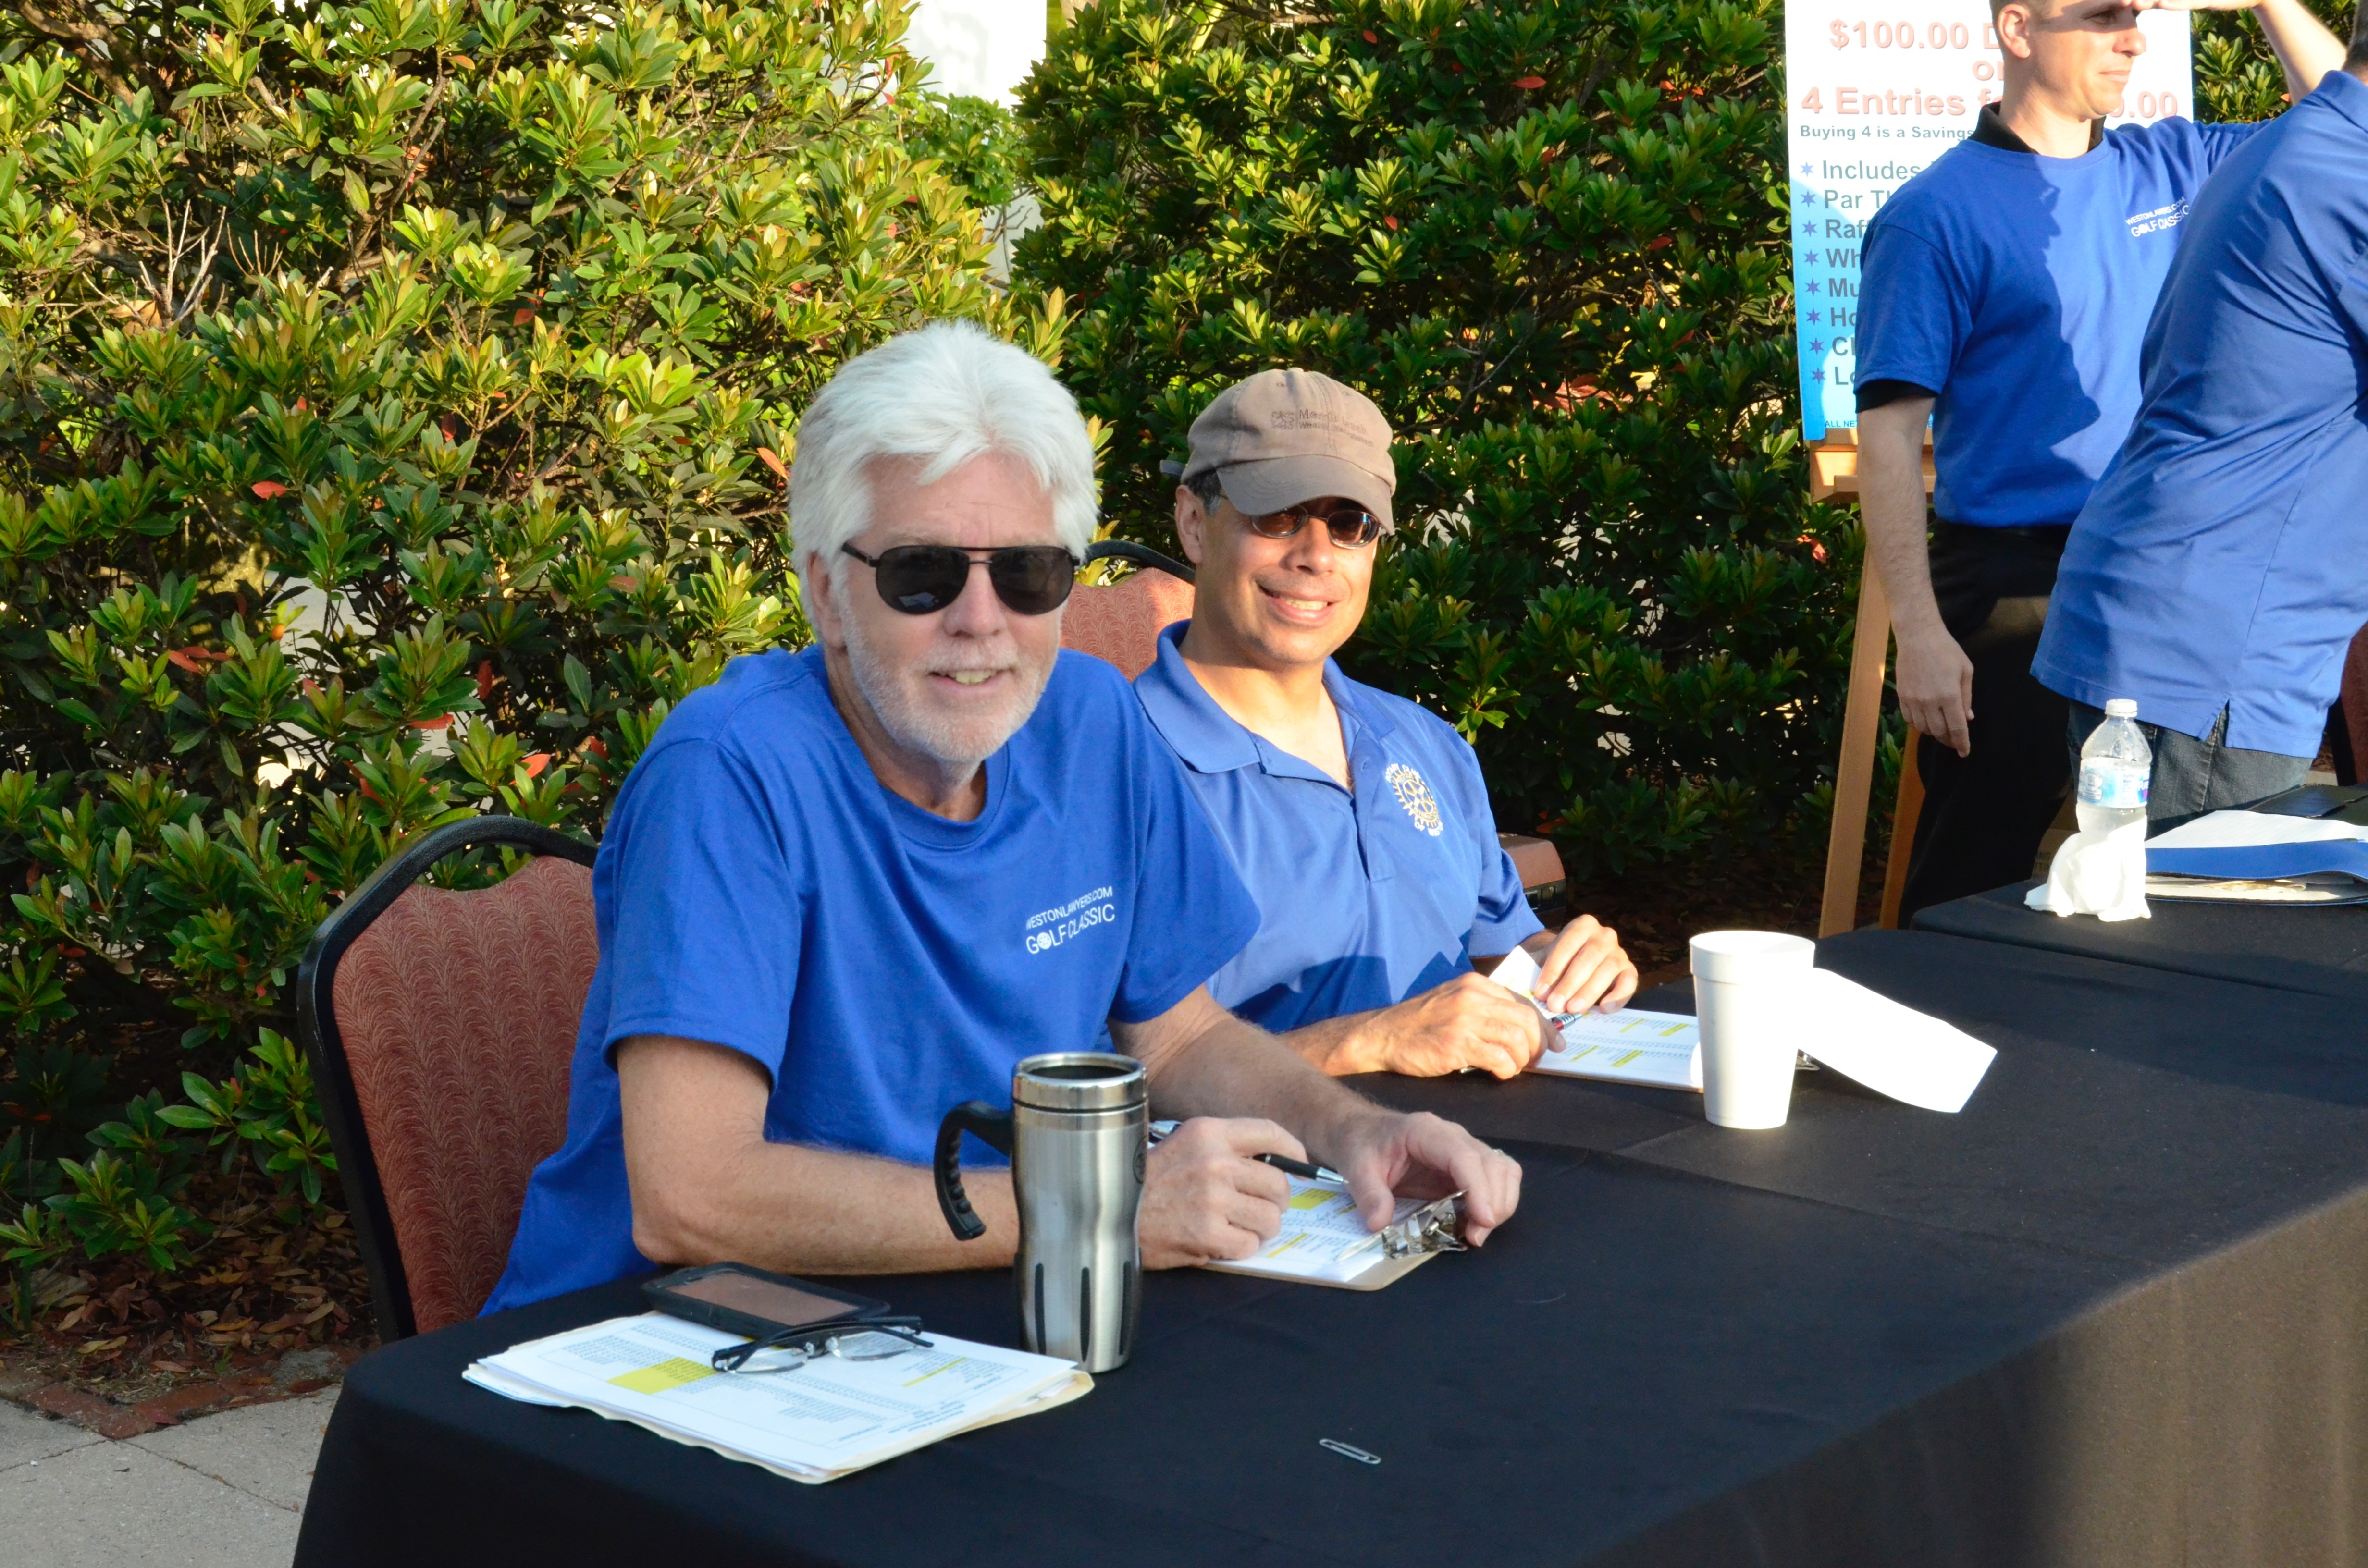 33rd Annual Rotary Golf Classic Sponsored by FHVLEGAL.COM gallery image #63